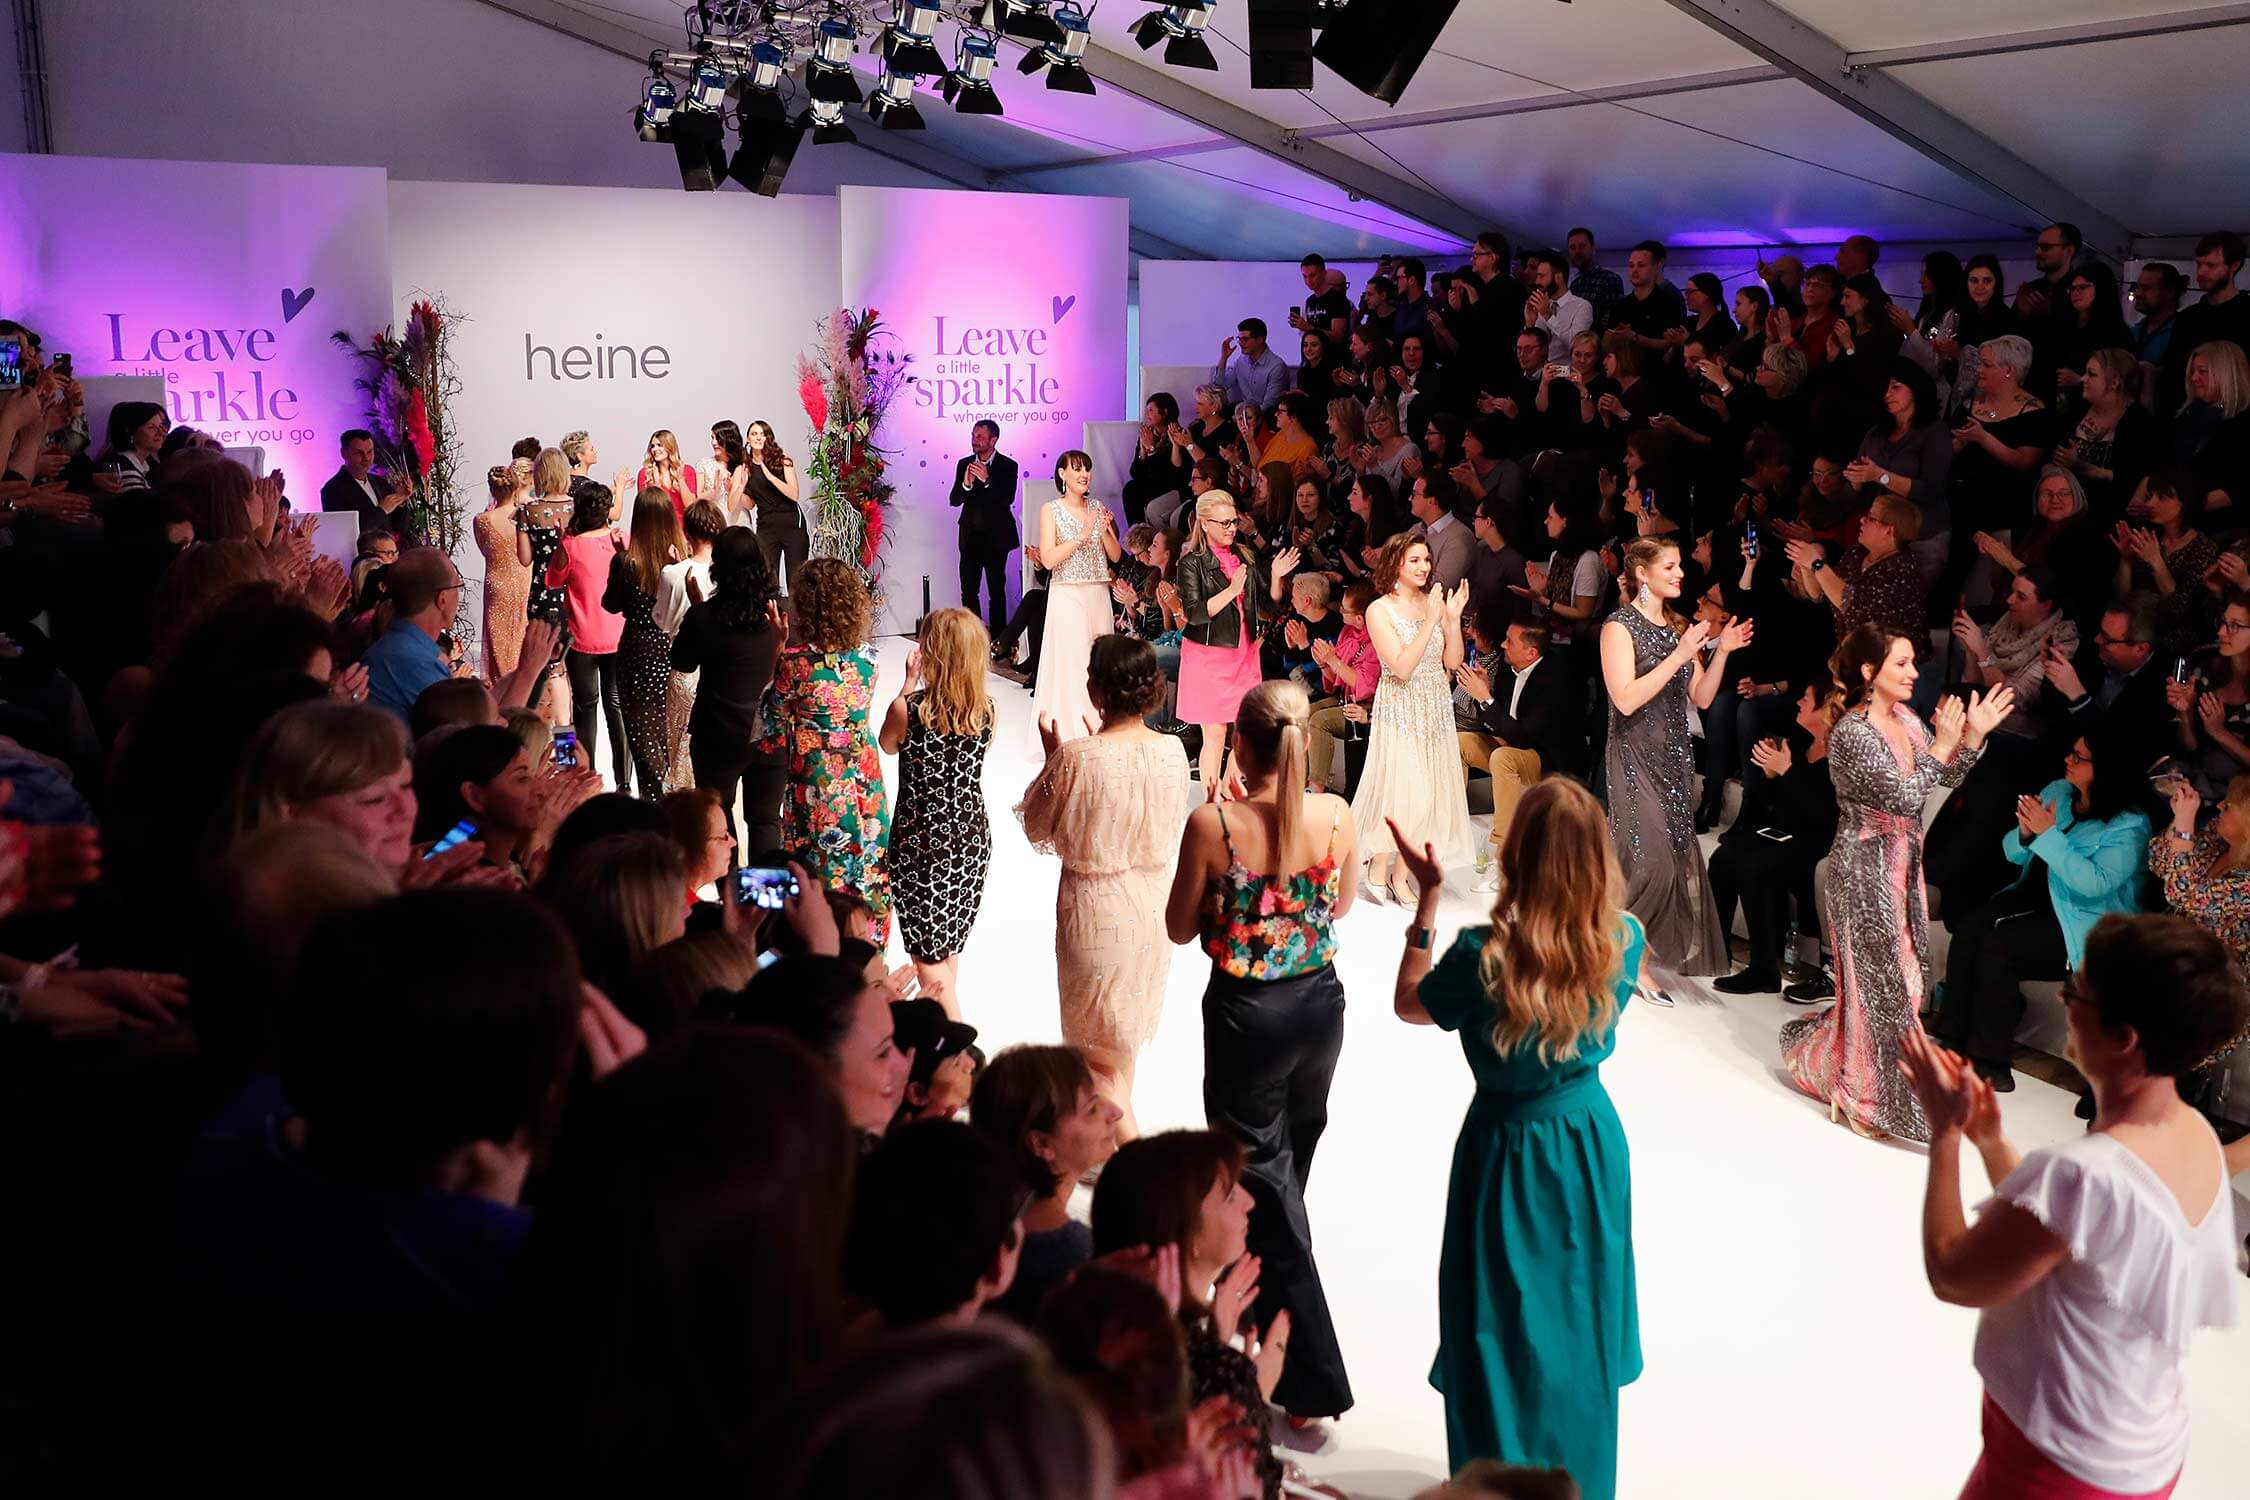 Leave a little sparkle wherever you go – Circus of Fashion bei heine